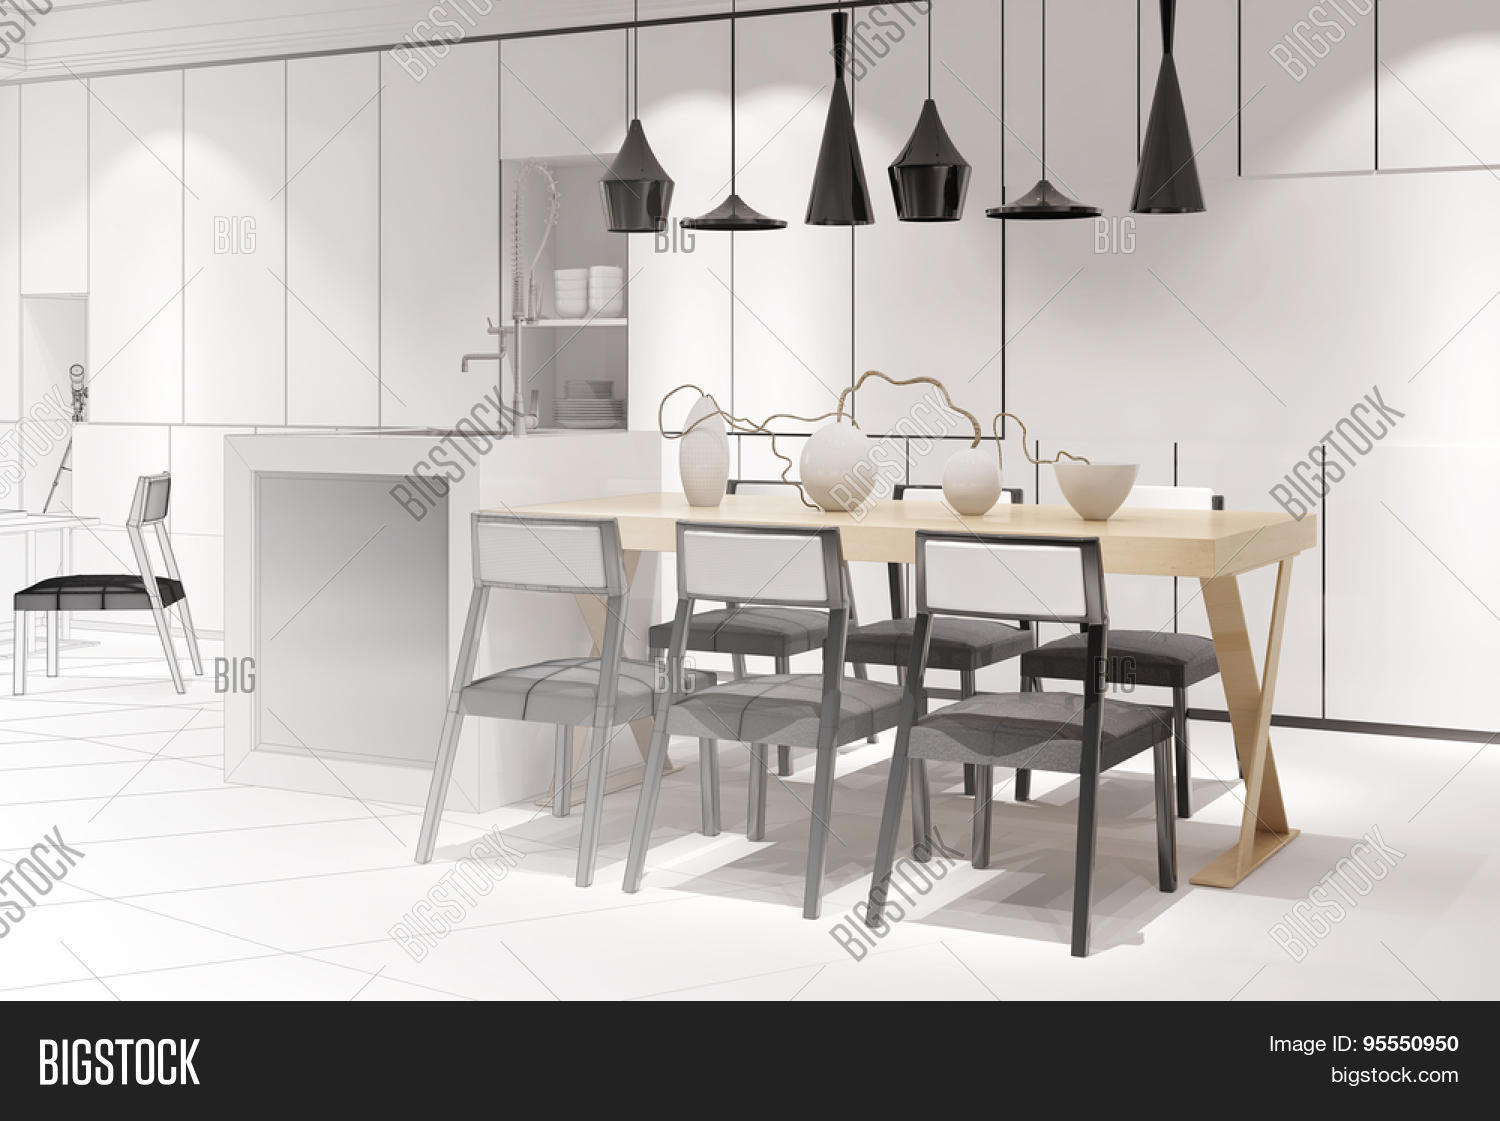 stock photo sketch of a modern eat in kitchen with dining table from interior architect (3d rendering) eat in kitchen table Sketch of a modern eat in kitchen with dining table from interior architect